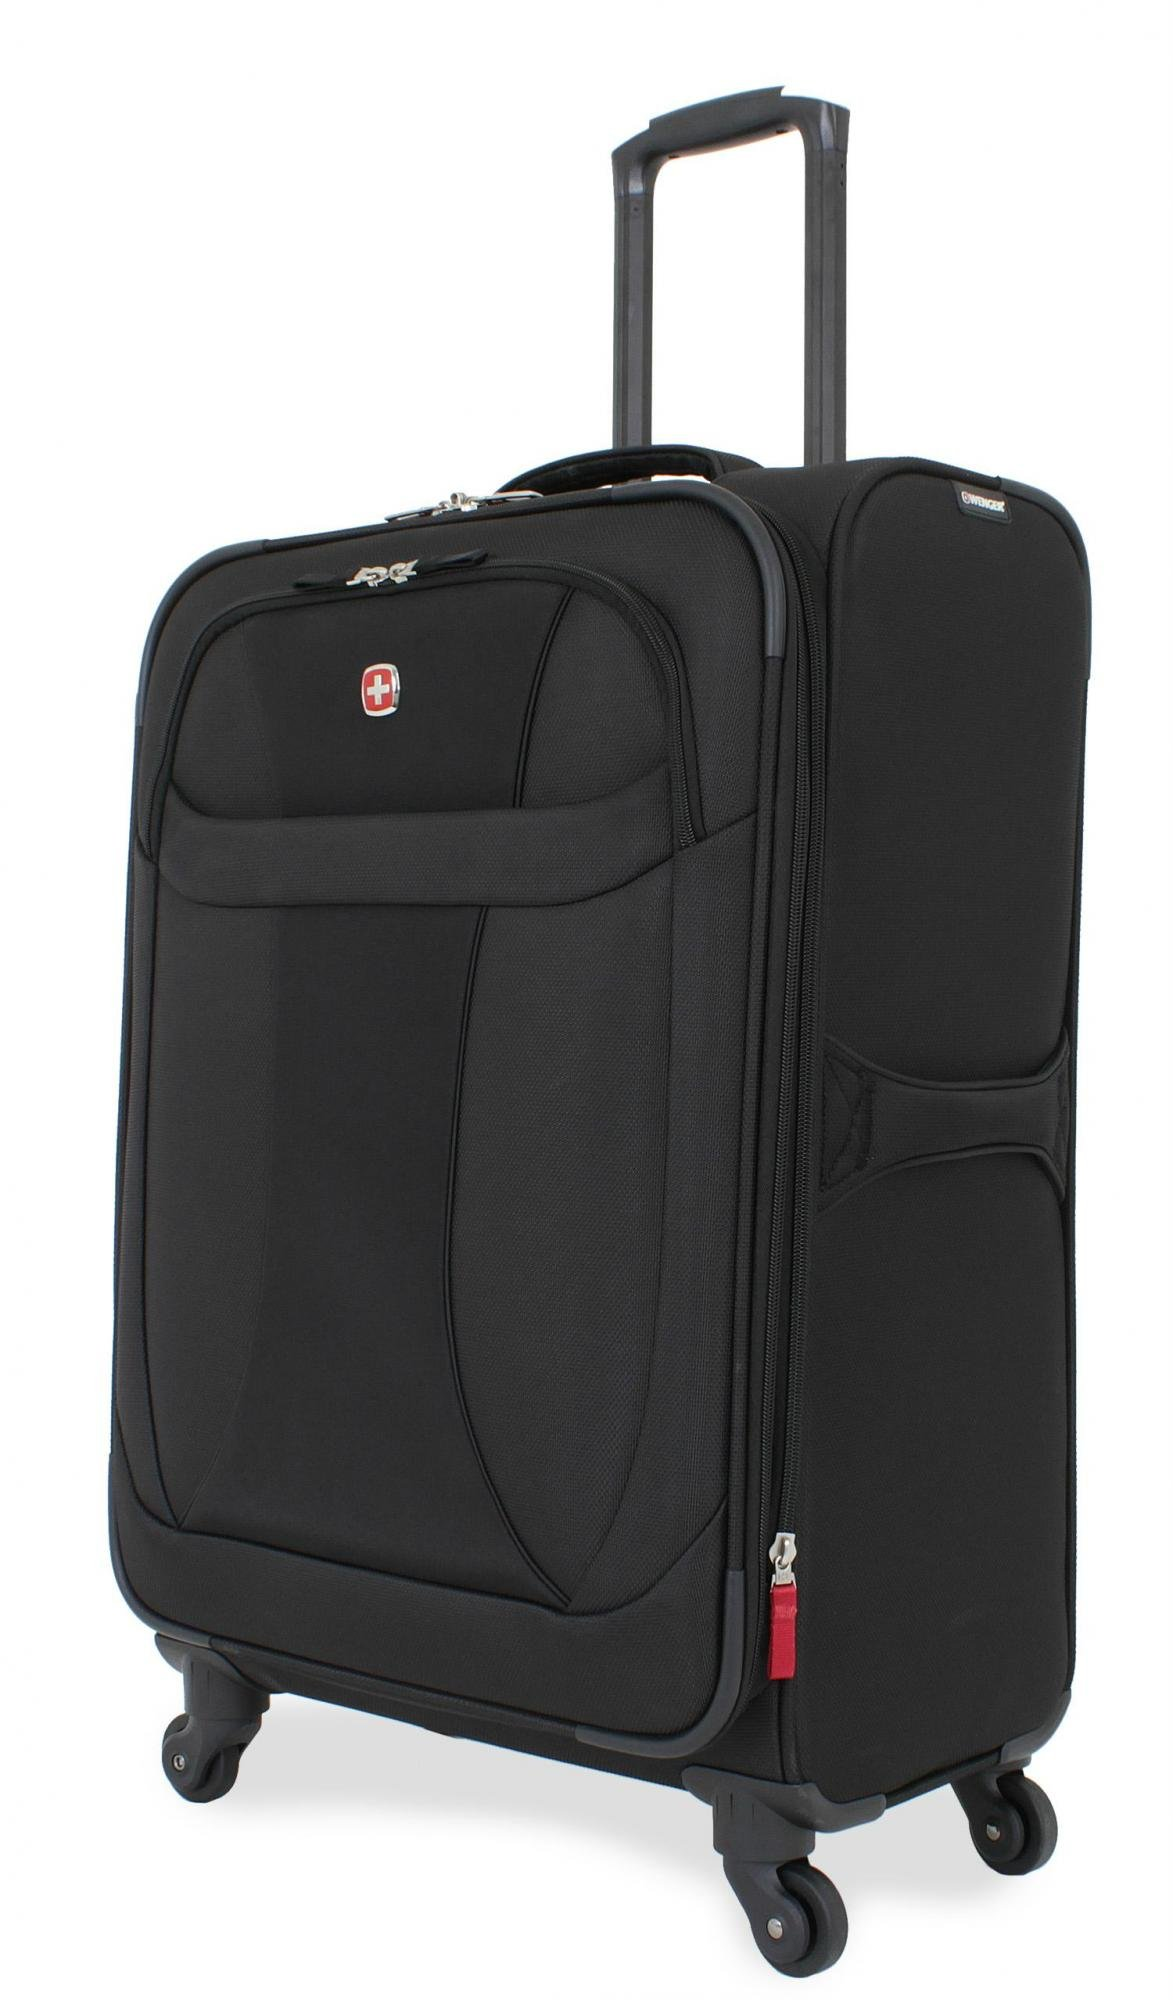 SwissGear Lightweight Spinner Luggage Collection Black 24'' Spinner